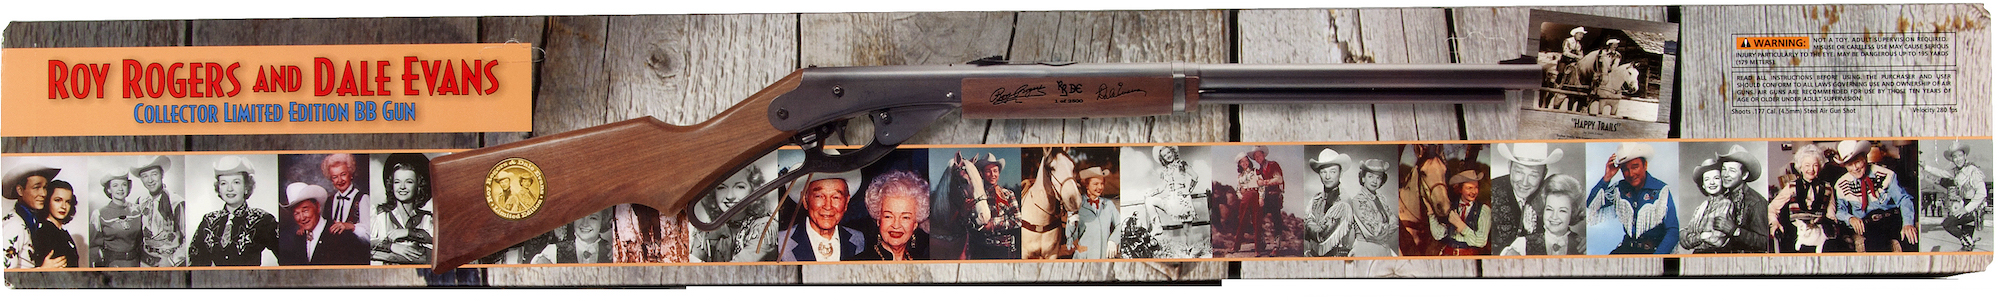 roy-rogers-dale-evans-limited-edition-daisy-bb-gun-rifle